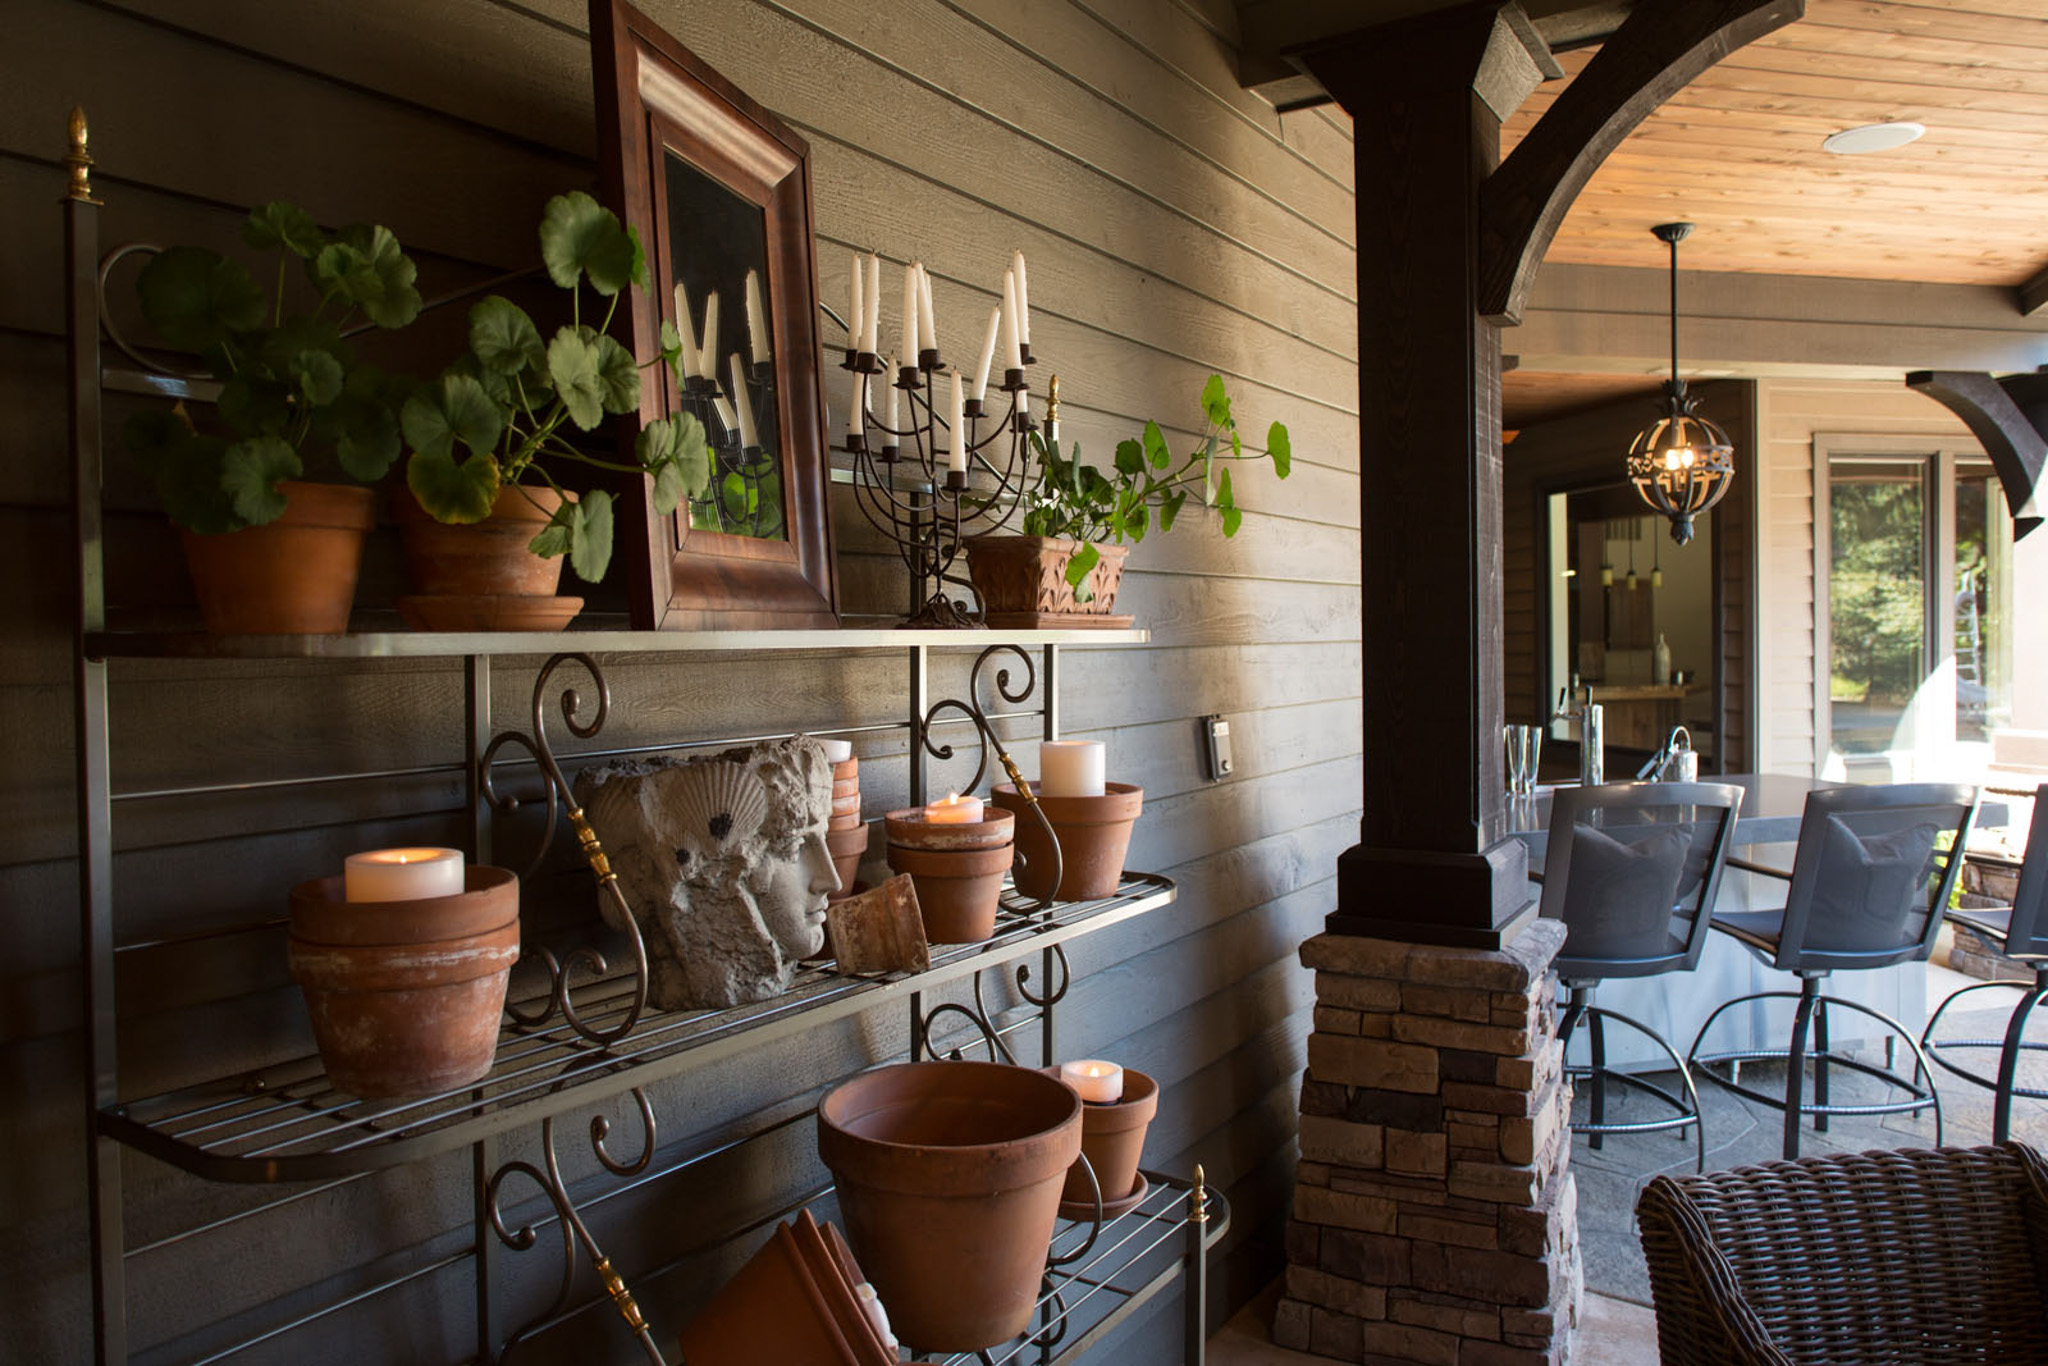 Lord Interior Design - Pete's Mountain Outdoor Kitchen and Patio Project-9.jpg